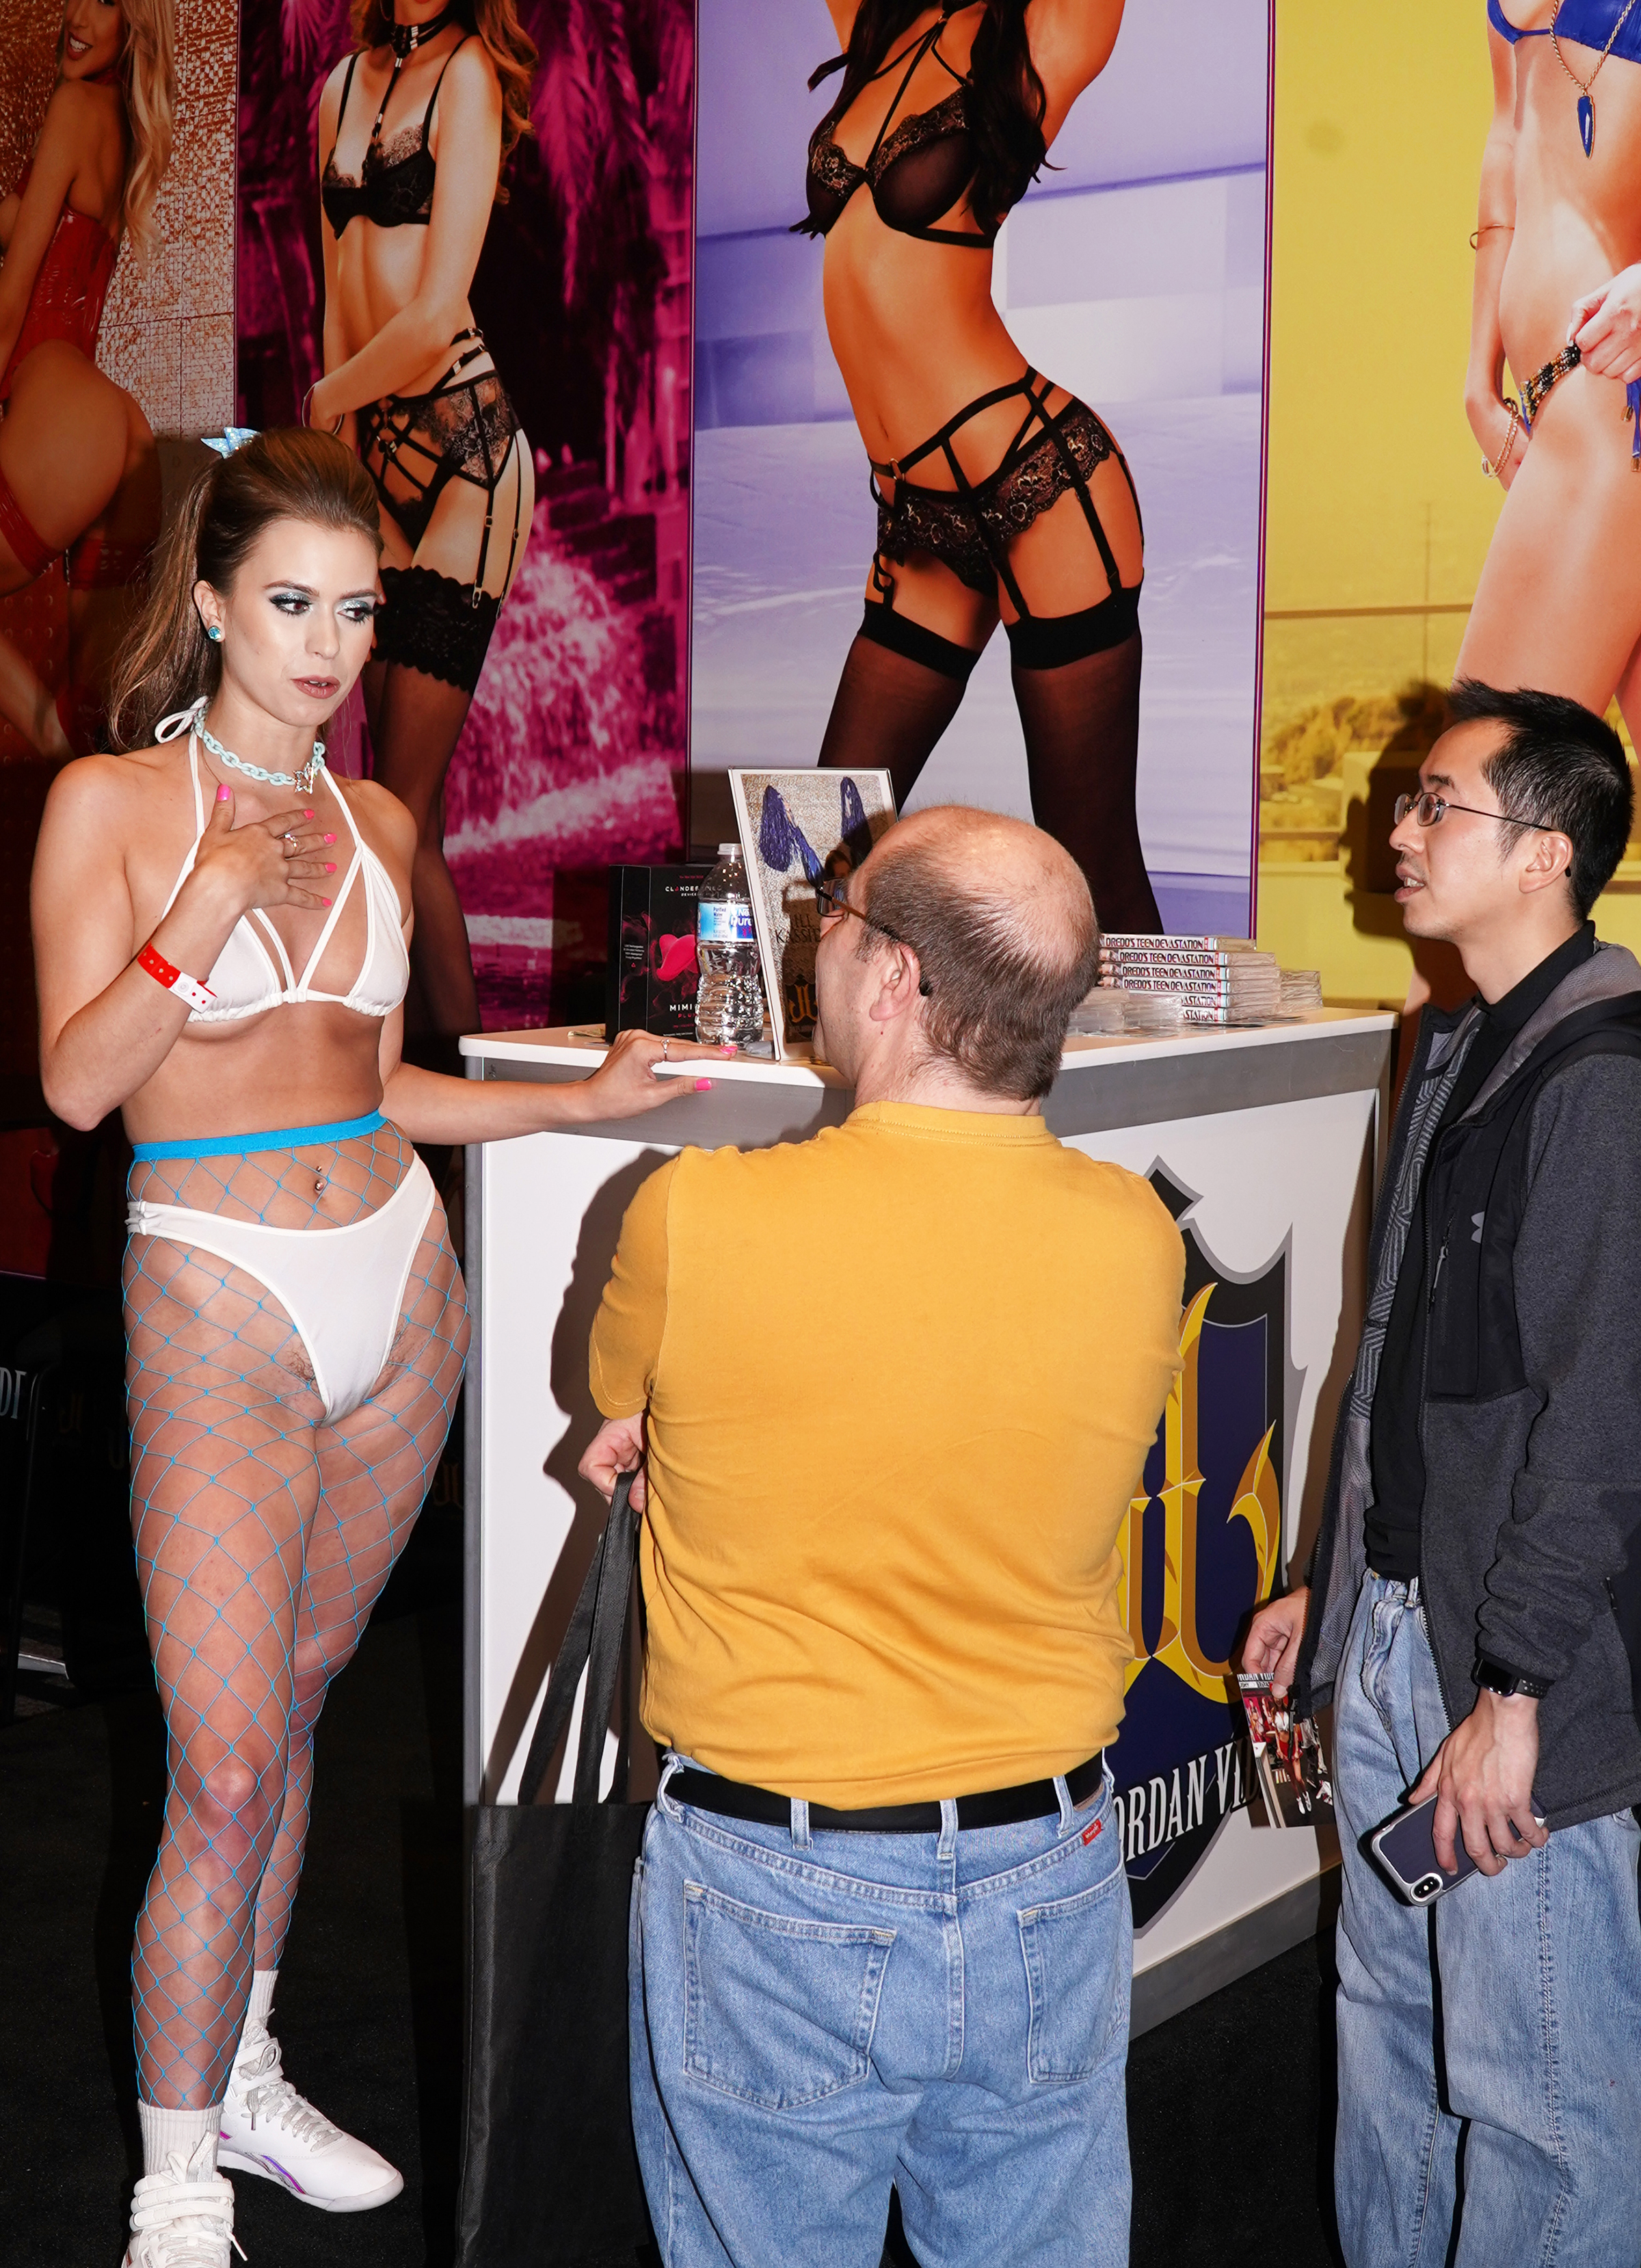 Two fans chatting to a porn performer